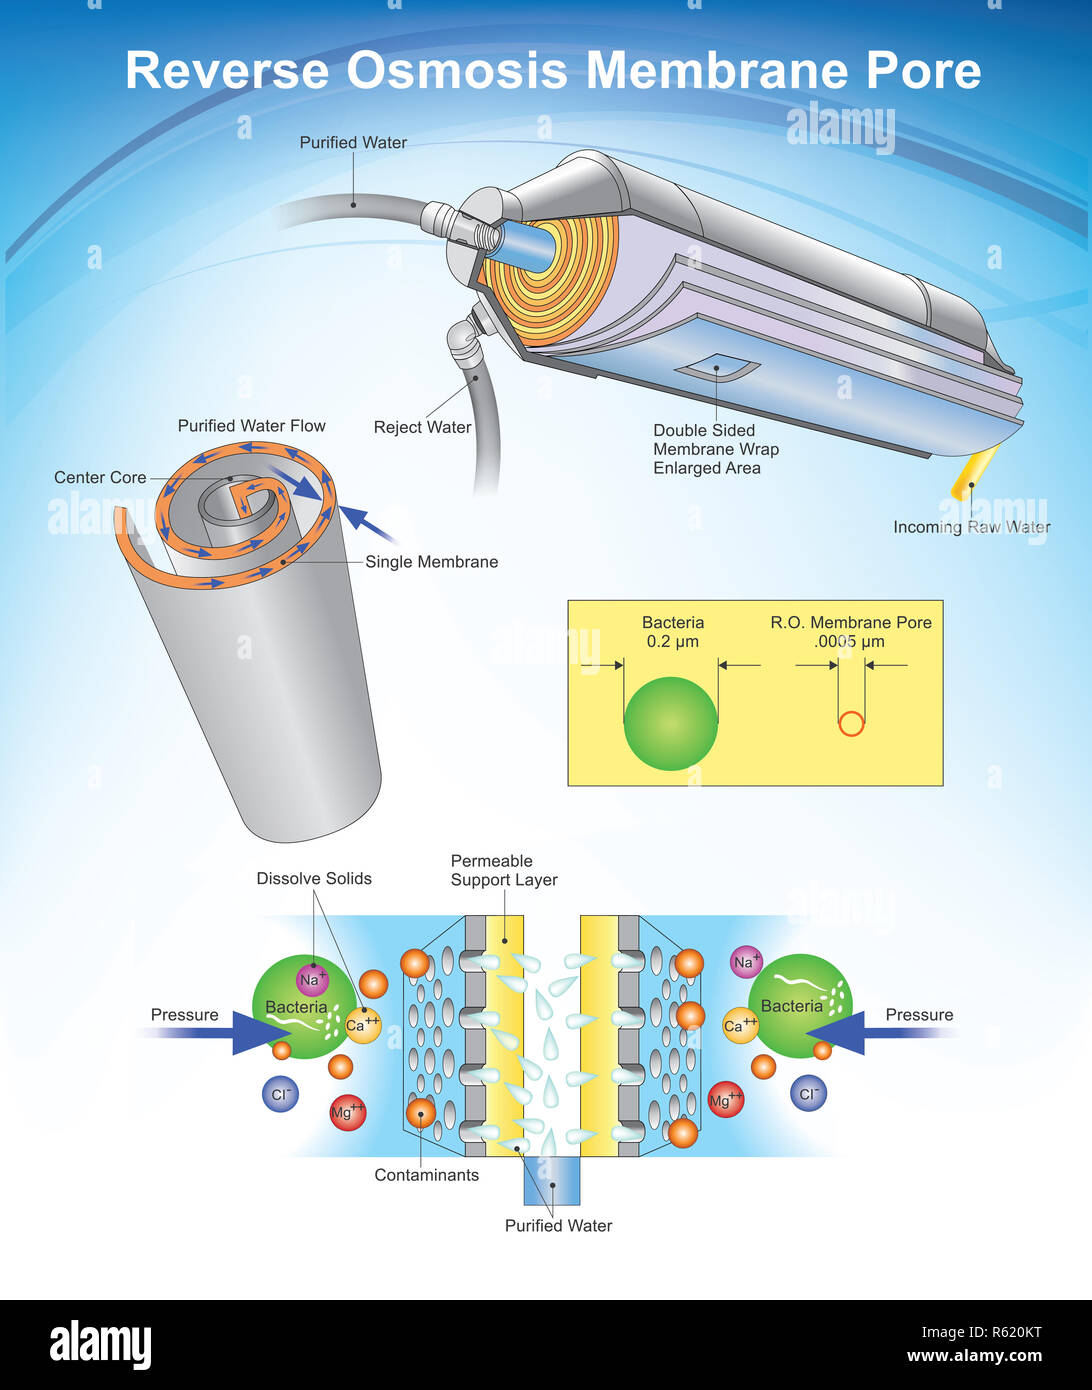 Reverse osmosis (RO) is a water purification technology that uses a semipermeable membrane to remove ions, molecules, and larger particles from drinking water. Info graphic, Illustration. - Stock Image